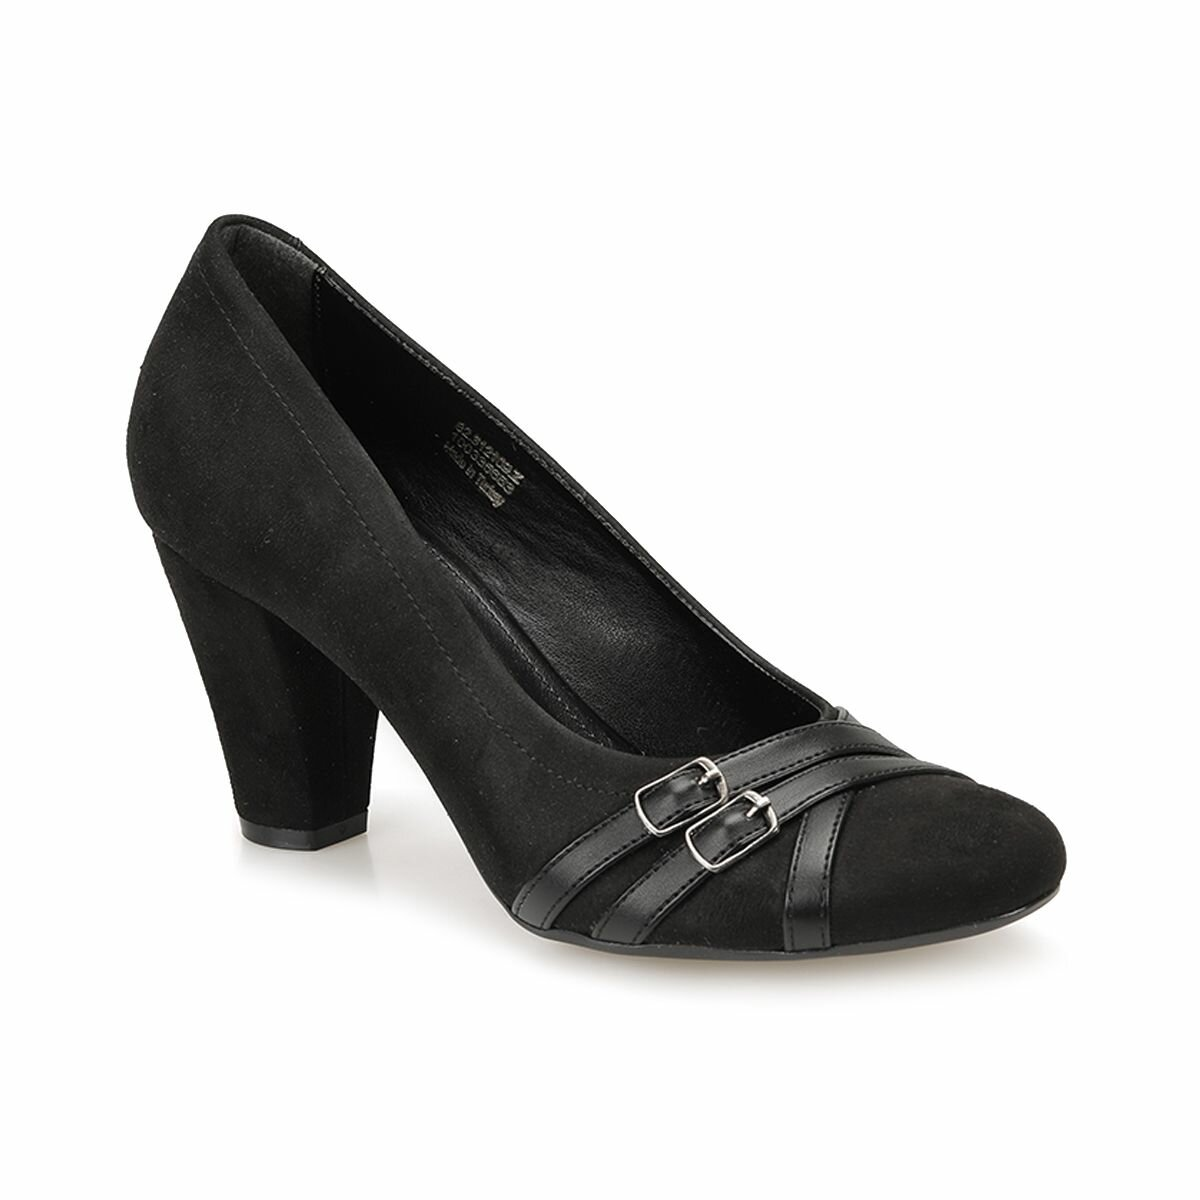 FLO 82.312109.Z Black Women Gova Shoes Polaris